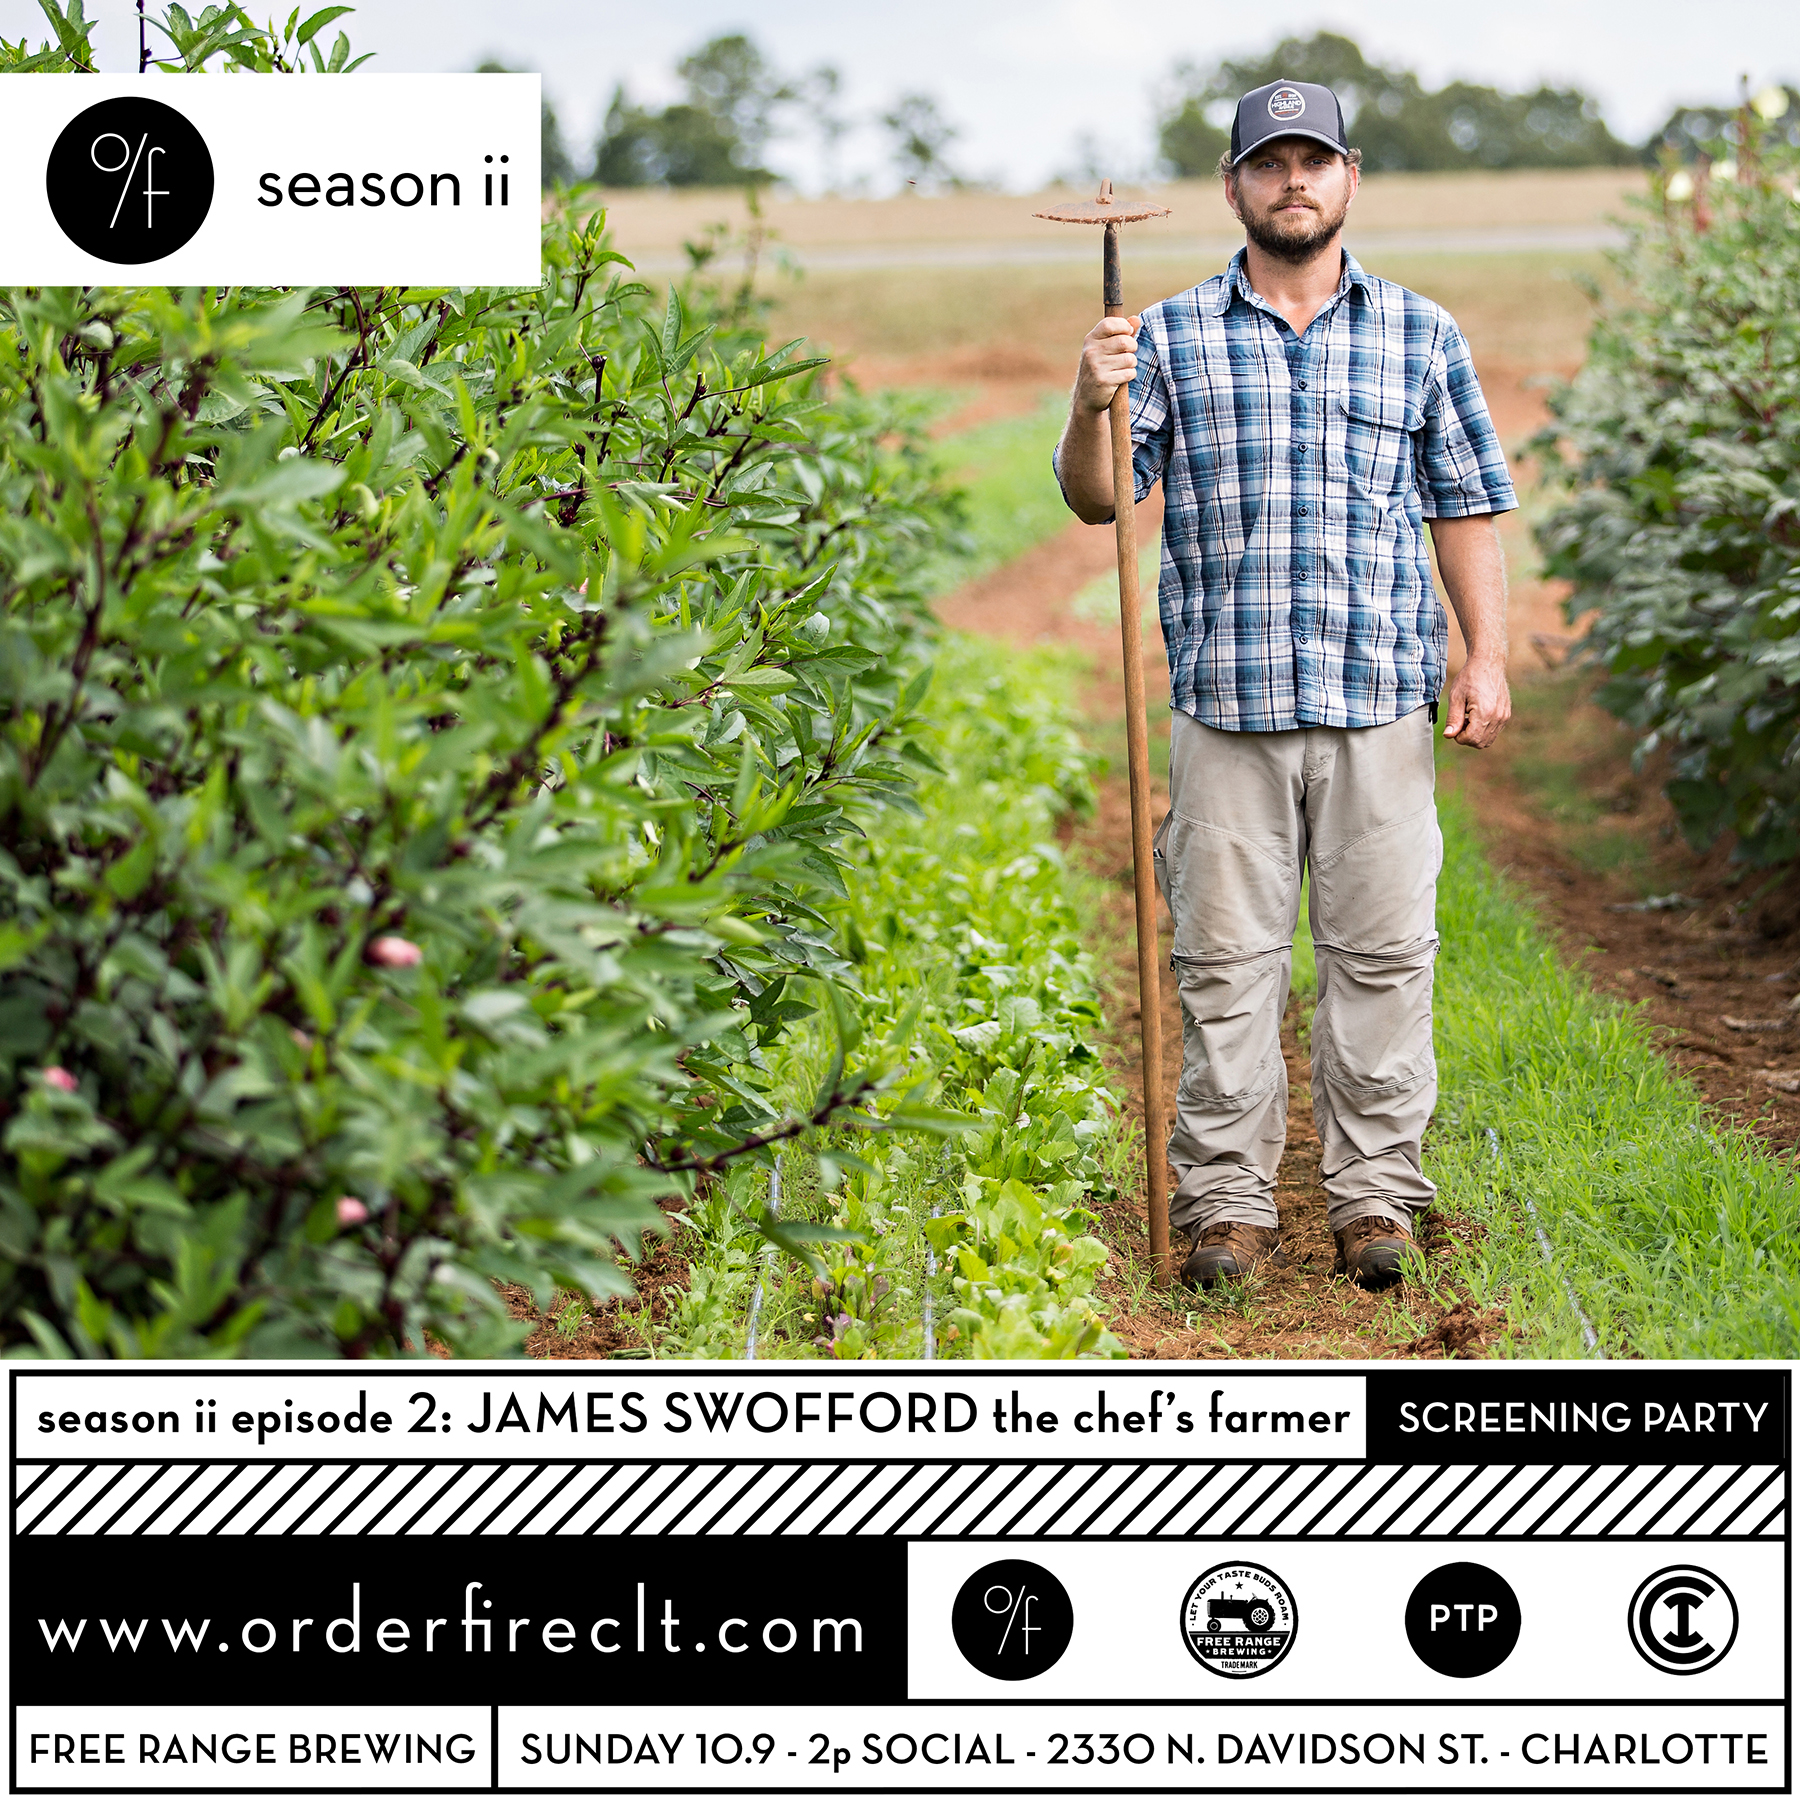 photographs of The Chef's Farmer Jamie Swofford at his farm in Polksville, NC Shot for order/frie posters and other uses photographed on Sept. 19th 2016. Photo by Peter Taylor